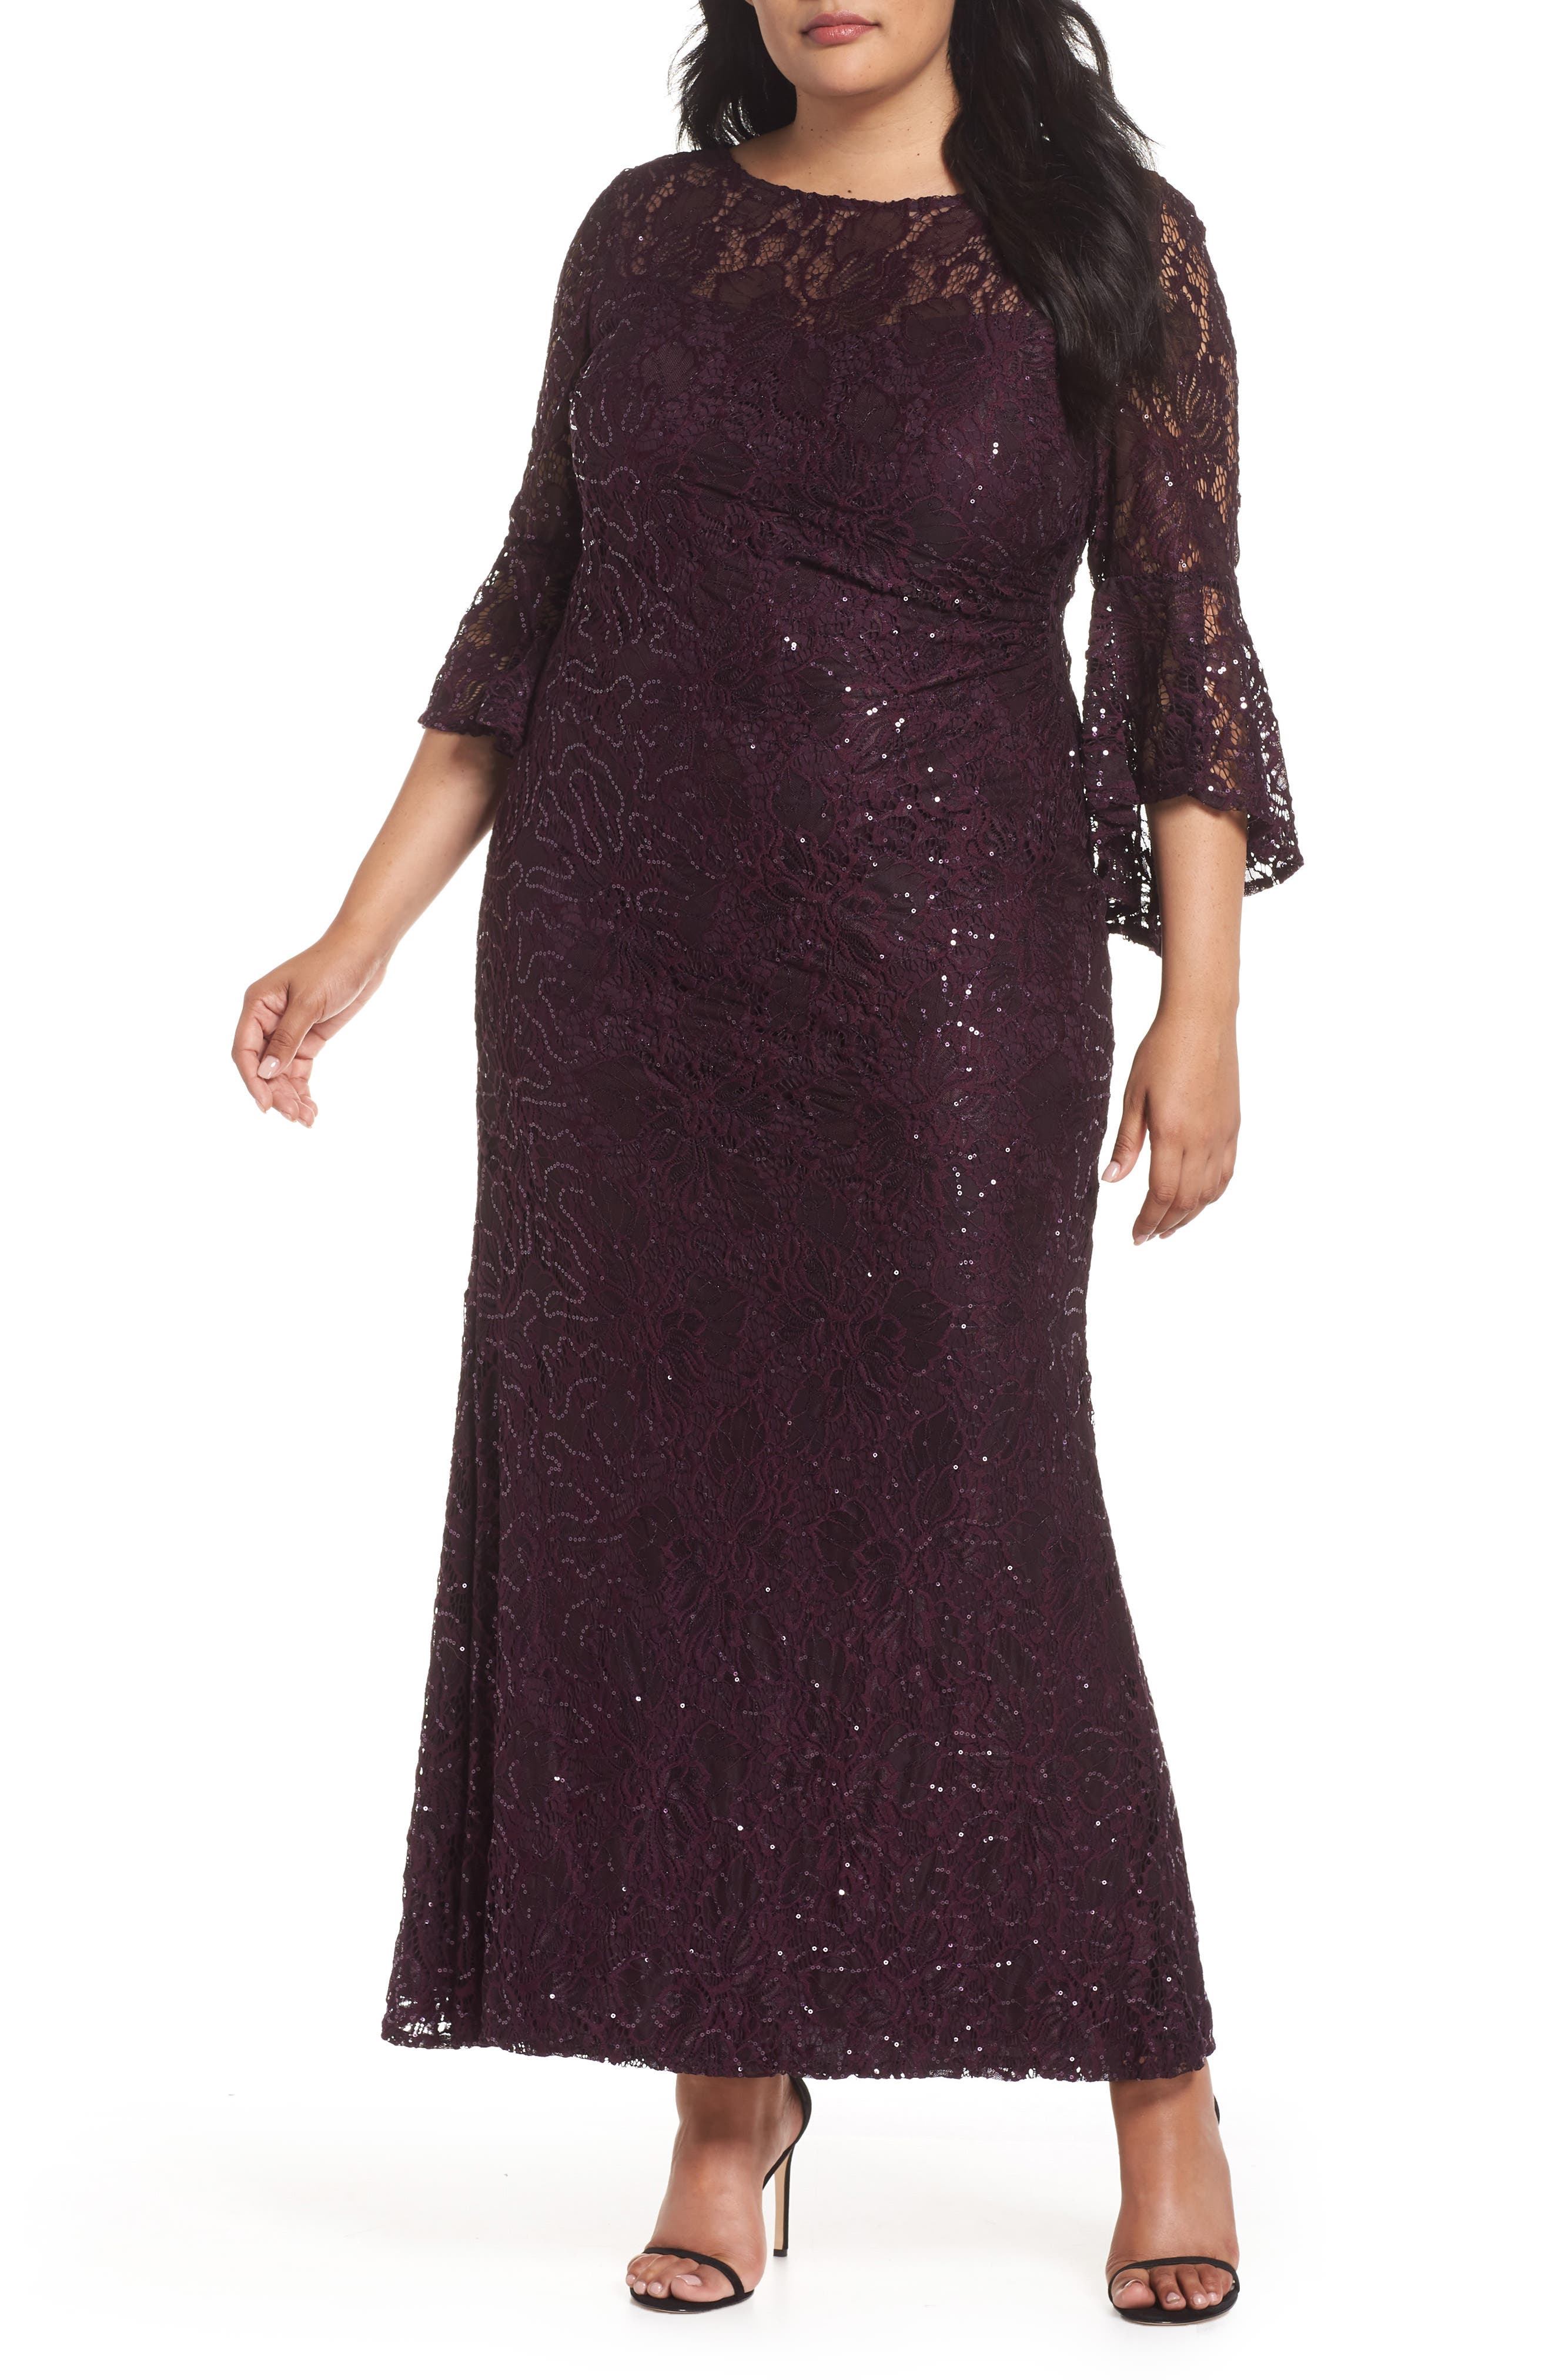 1920s Party Dresses, Great Gatsby Gowns, Prom Dresses Plus Size Womens Morgan  Co. Lace Bell Sleeve Gown Size 14W - Purple $139.00 AT vintagedancer.com